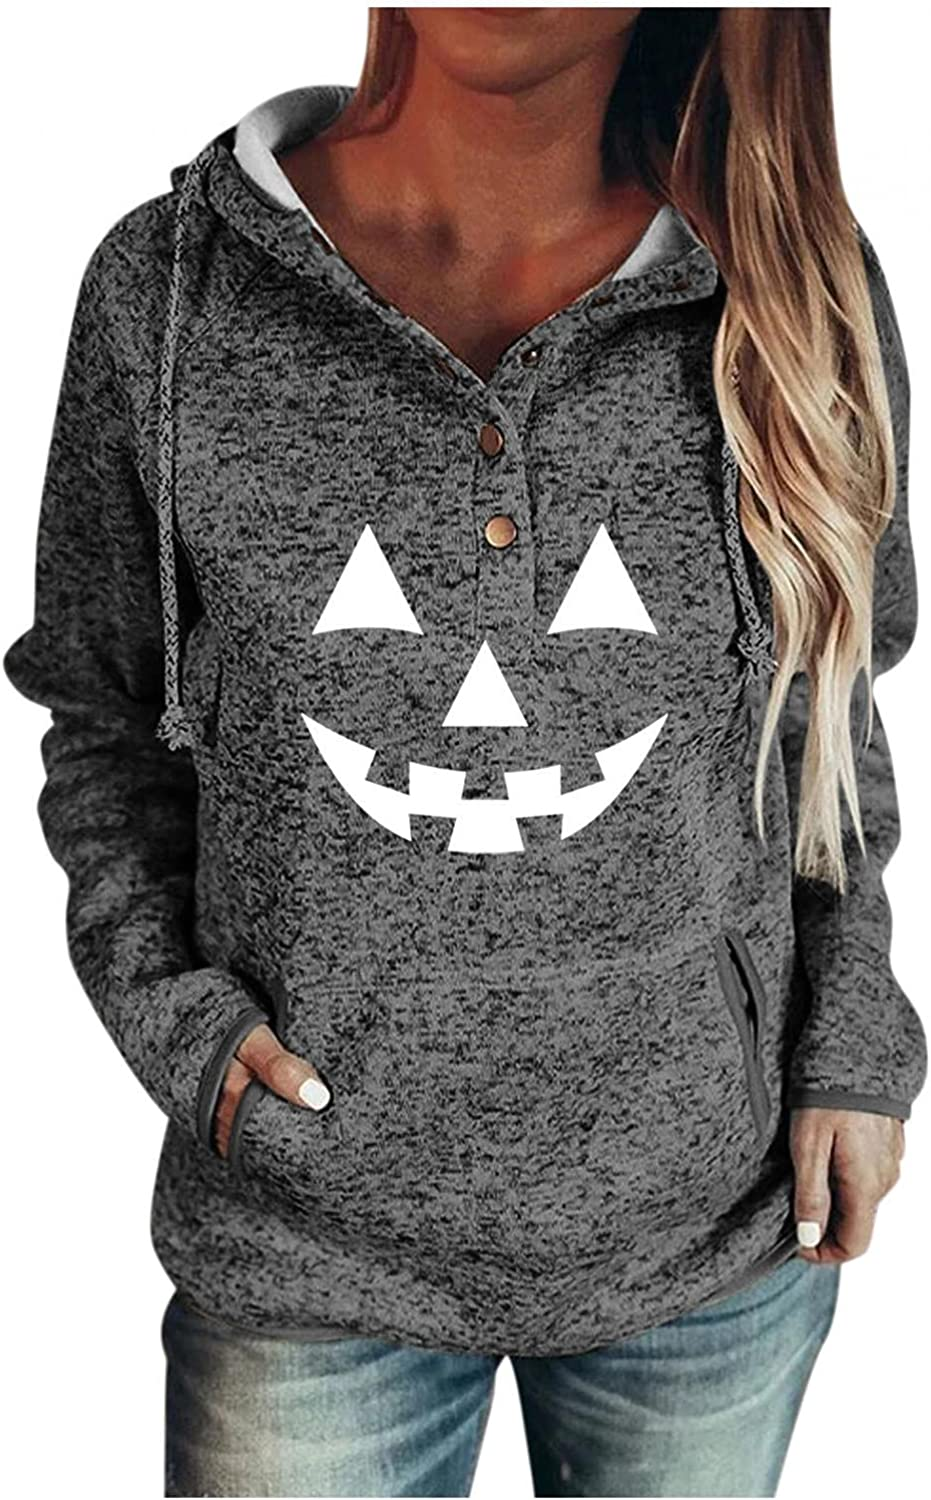 UOCUFY Hoodies for Women, Womens Halloween Pullover Button Down Hoodies with Pockets Casual Long Sleeve Sweatshirts